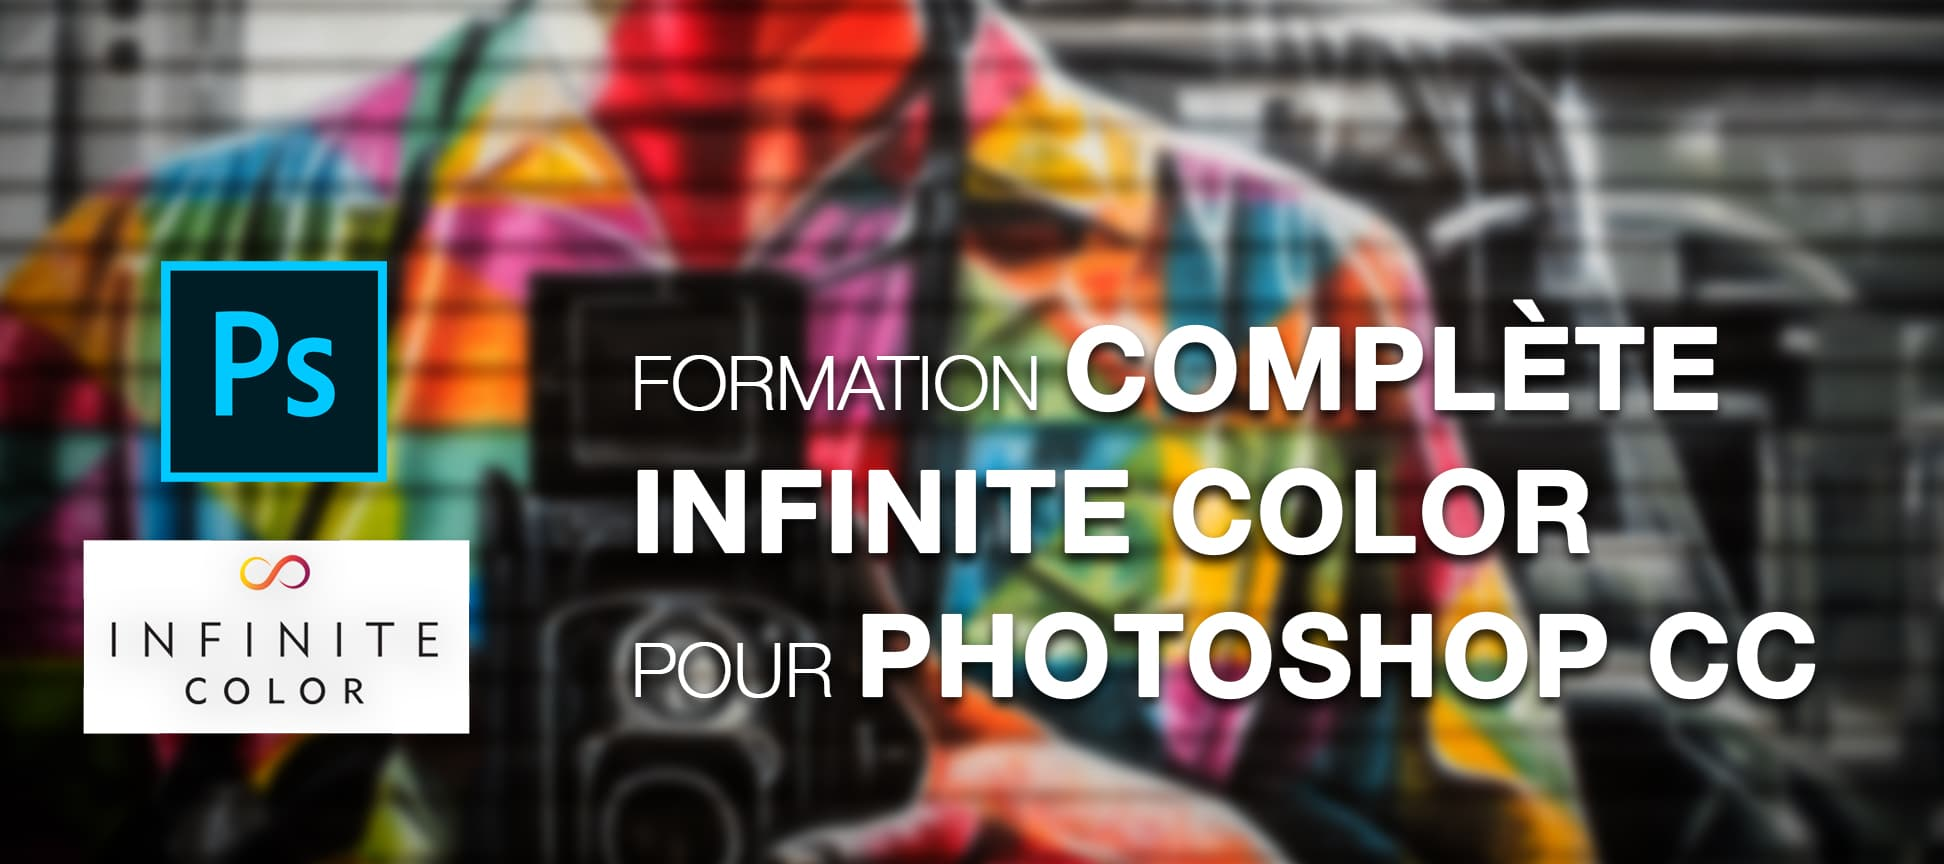 Formation complète Infinite Color Panel pour Adobe Photoshop CC